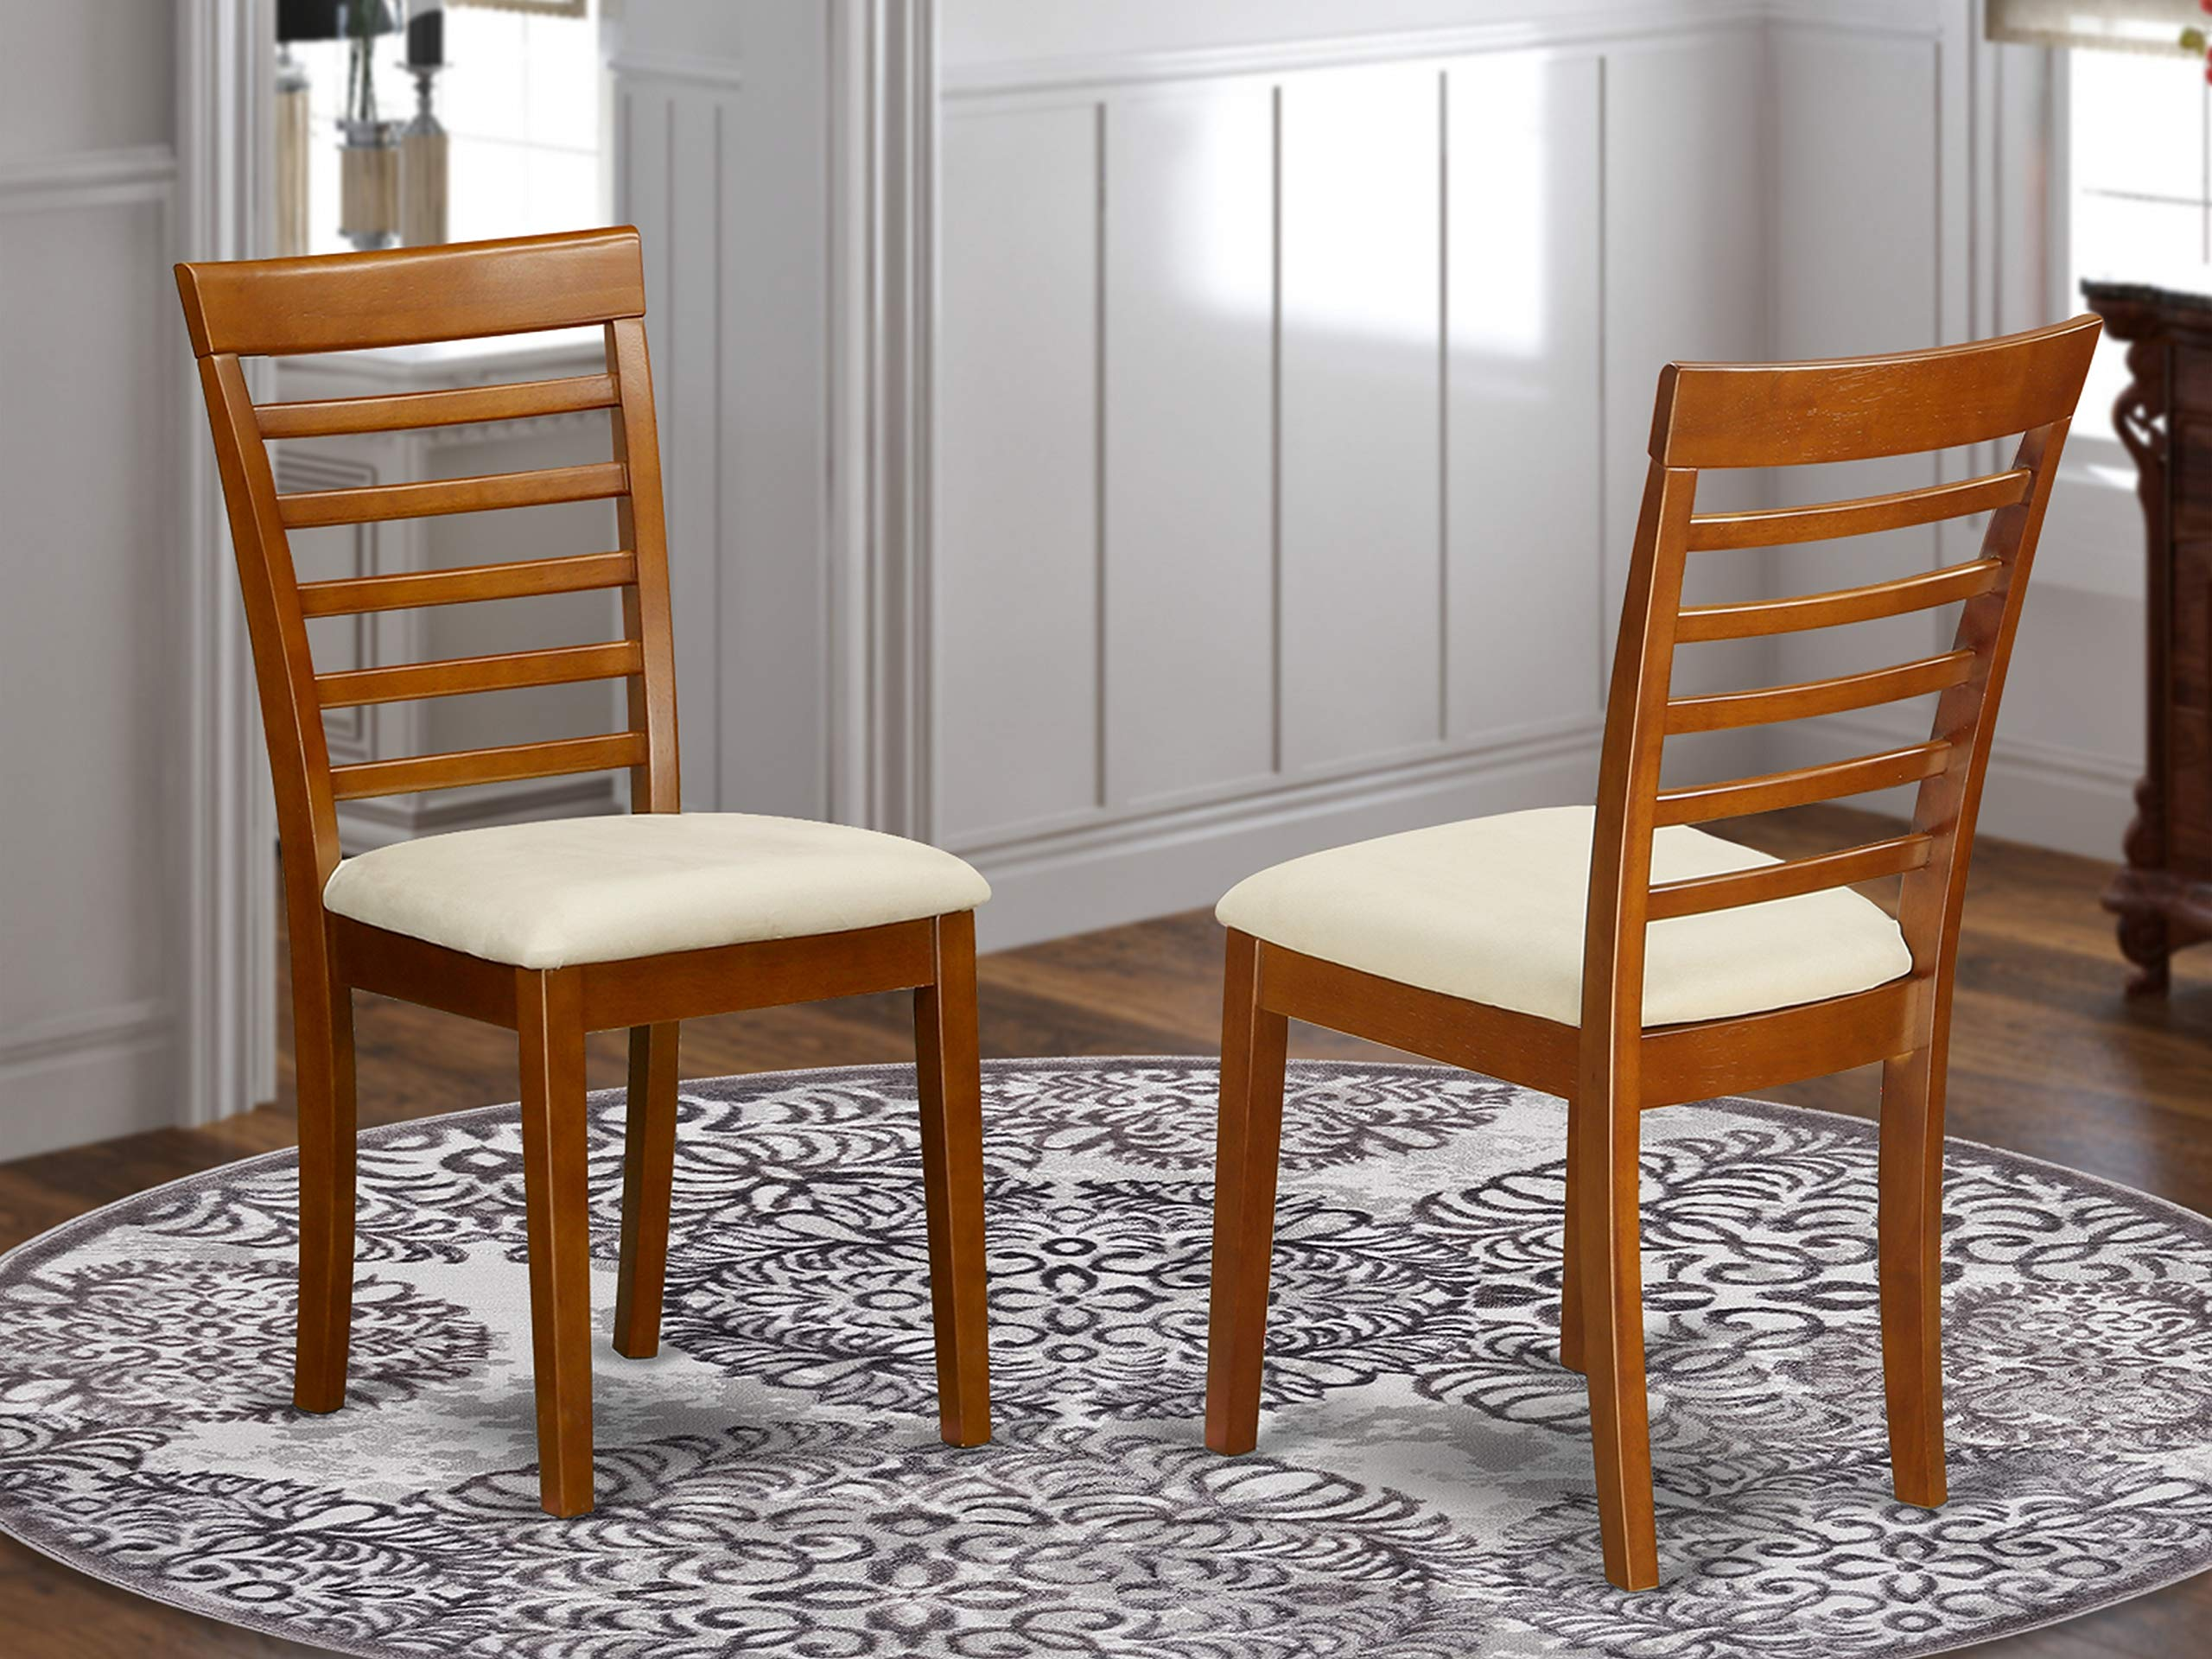 East West Furniture MLC-SBR-C Dining Chair Set with Cushion Seat, Saddle Brown Finish, Set of 2 by East West Furniture